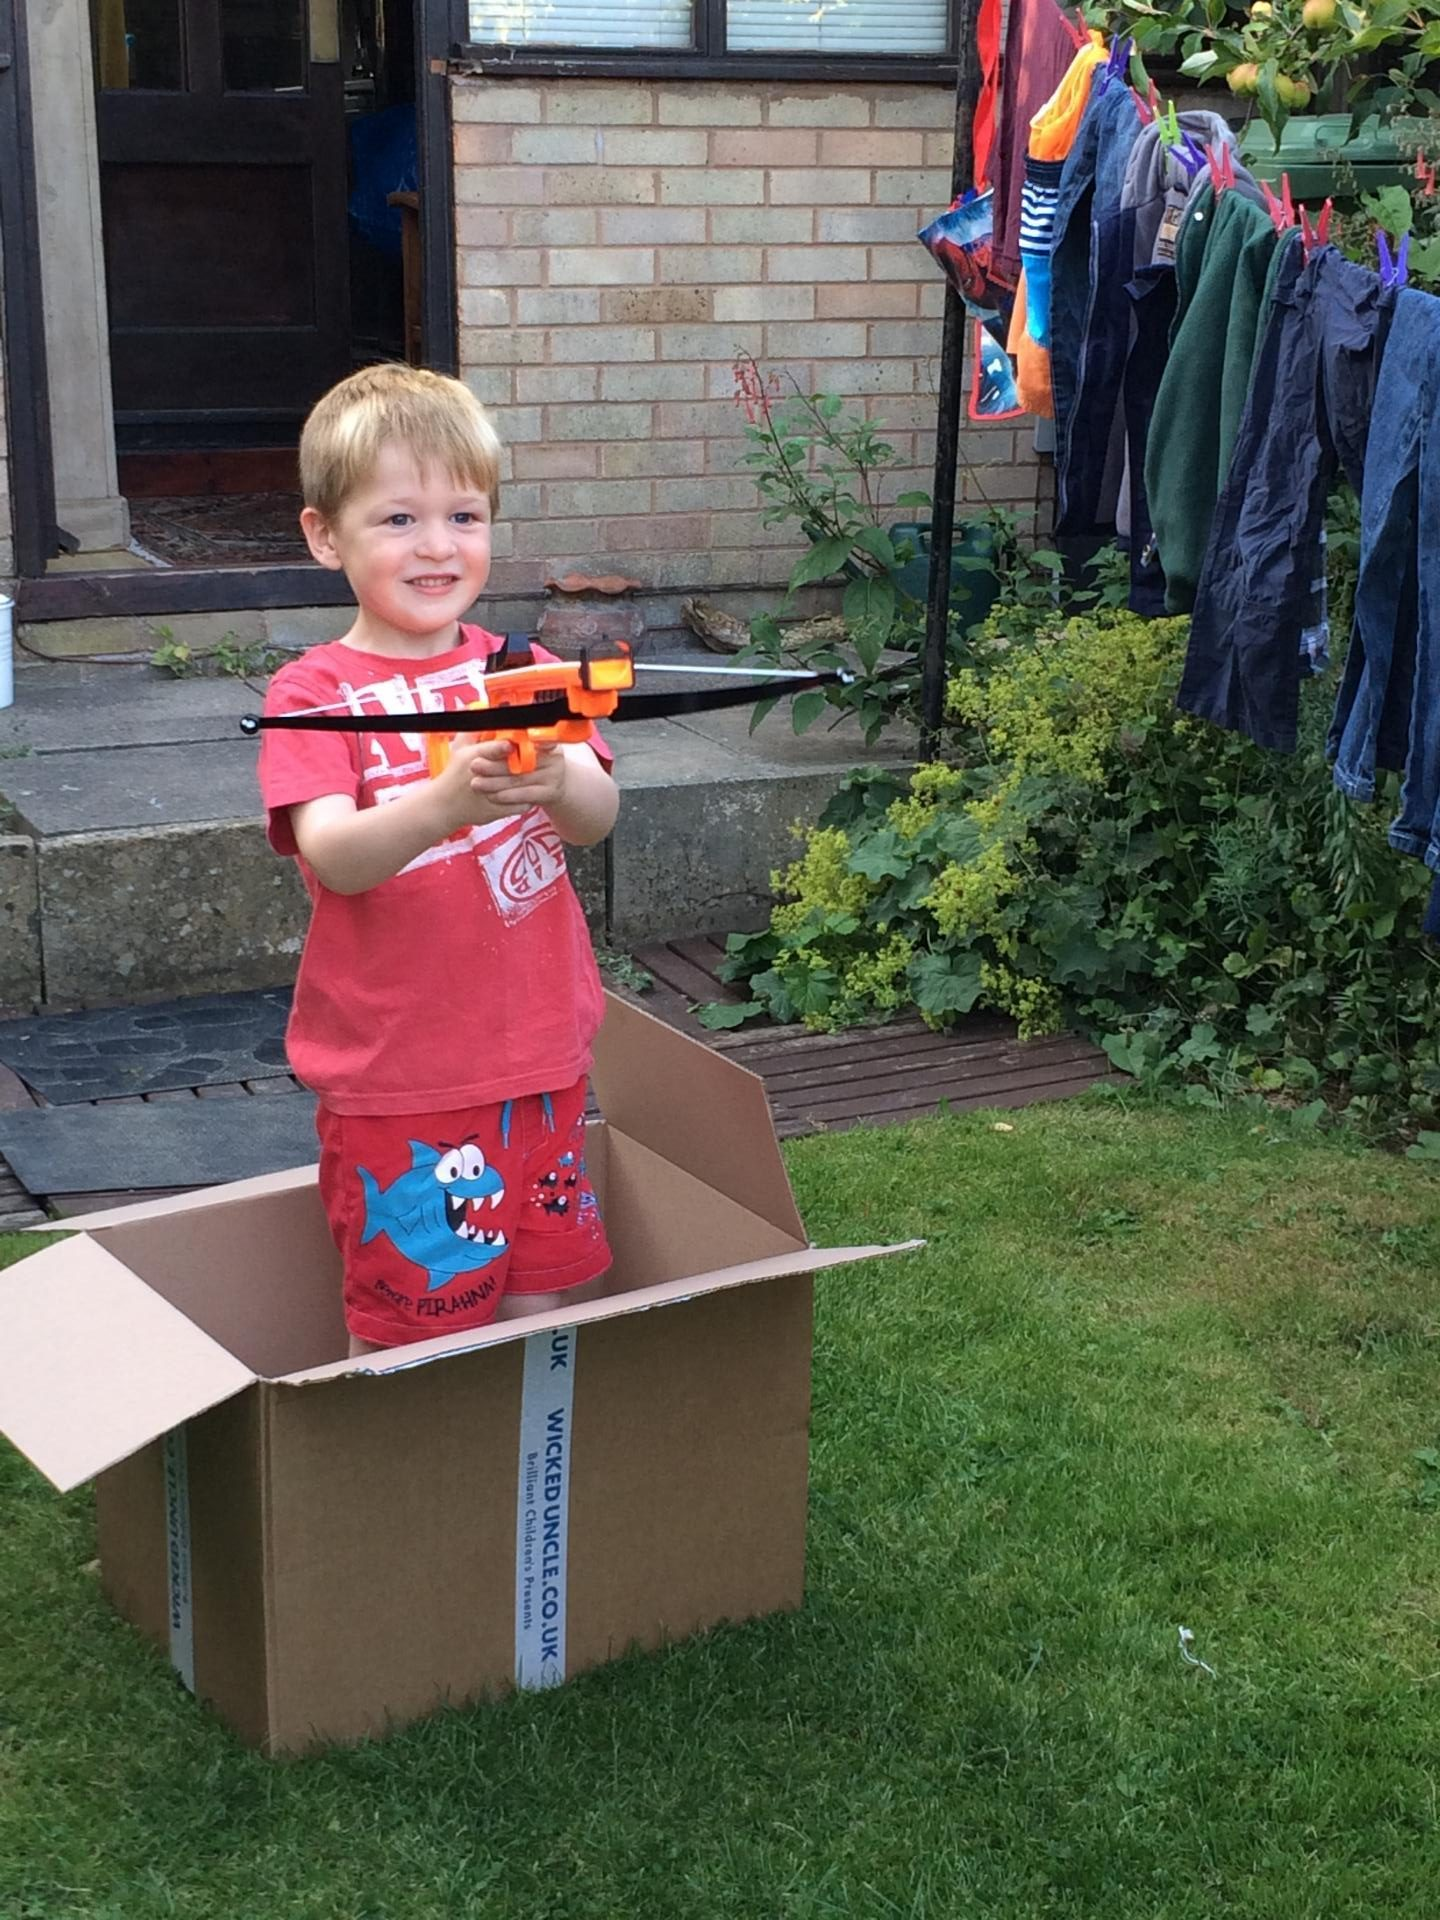 Boy sitting in a box with a handbow looking like he is trying to shoot someone.